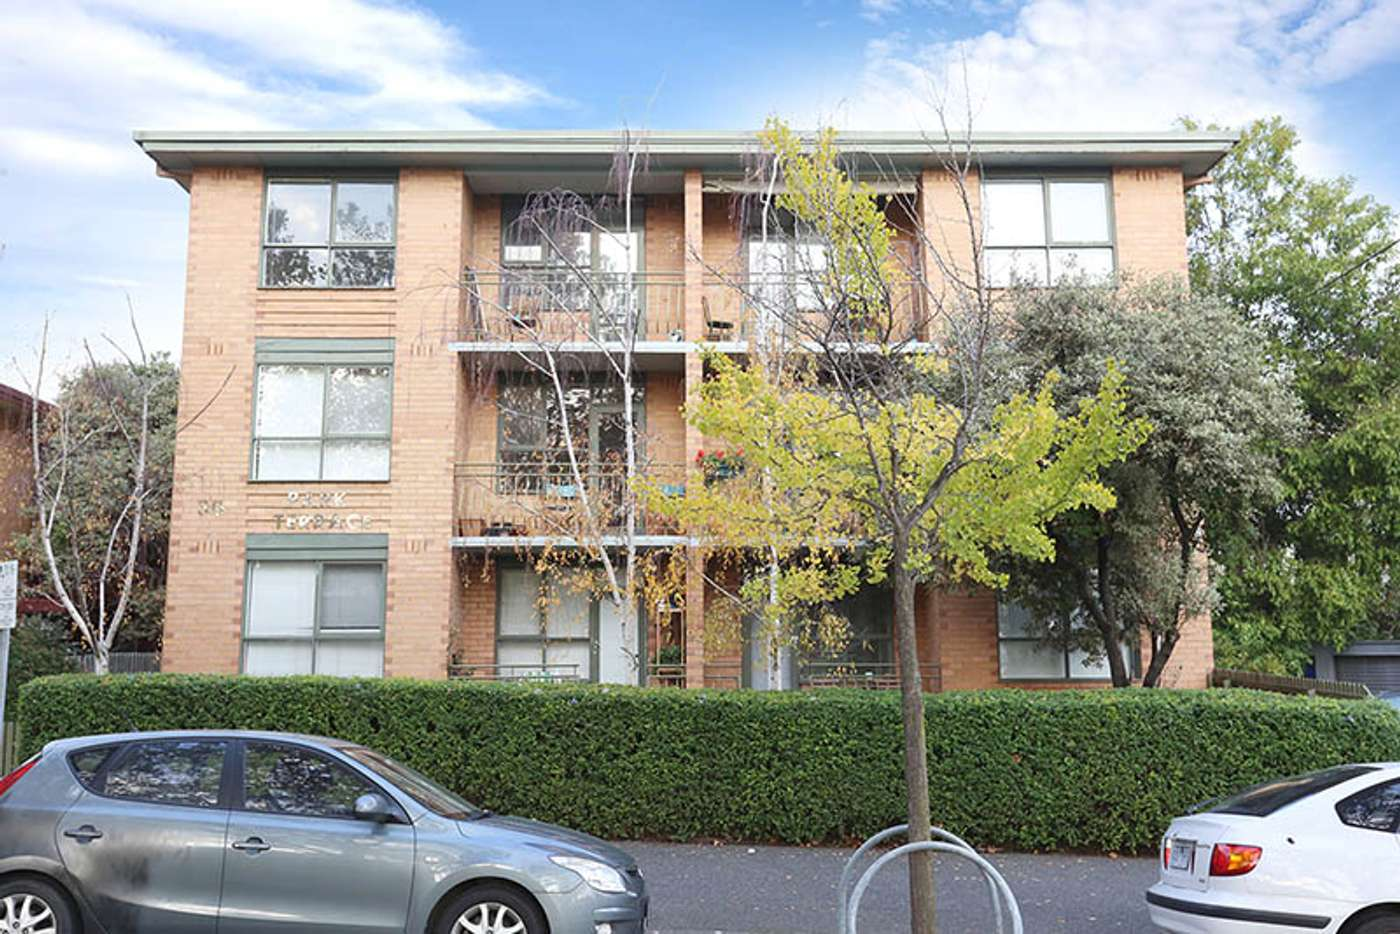 Main view of Homely apartment listing, 3/30 Park Drive, Parkville VIC 3052